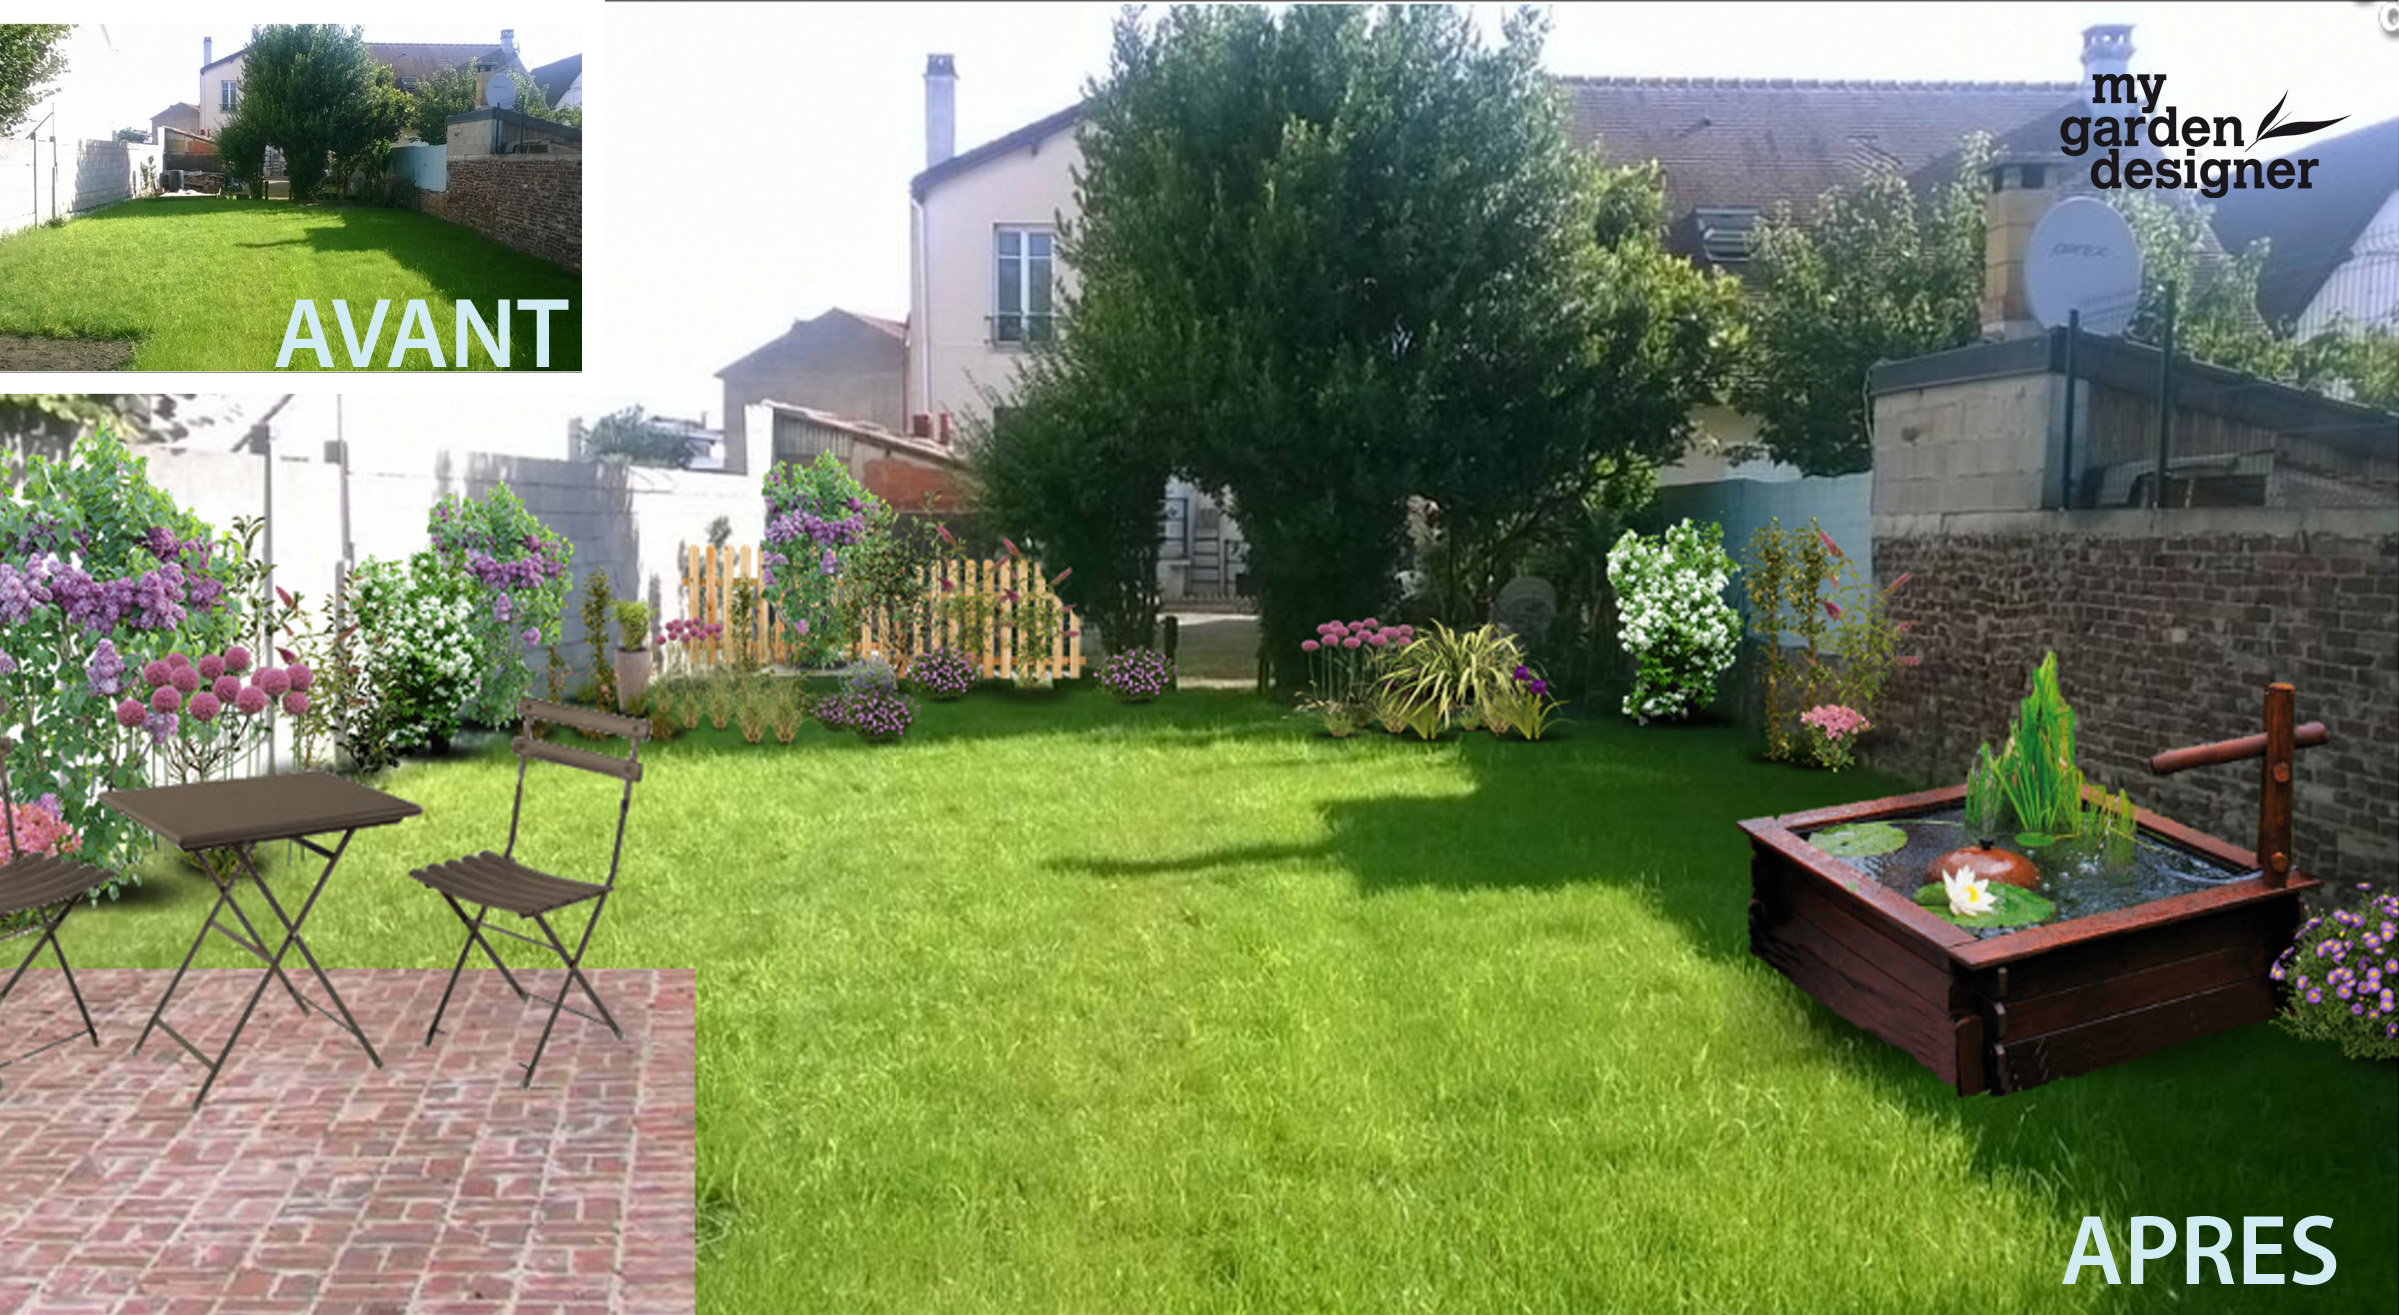 Am nager un jardin carr en ile de france monjardin for Amenager un petit jardin